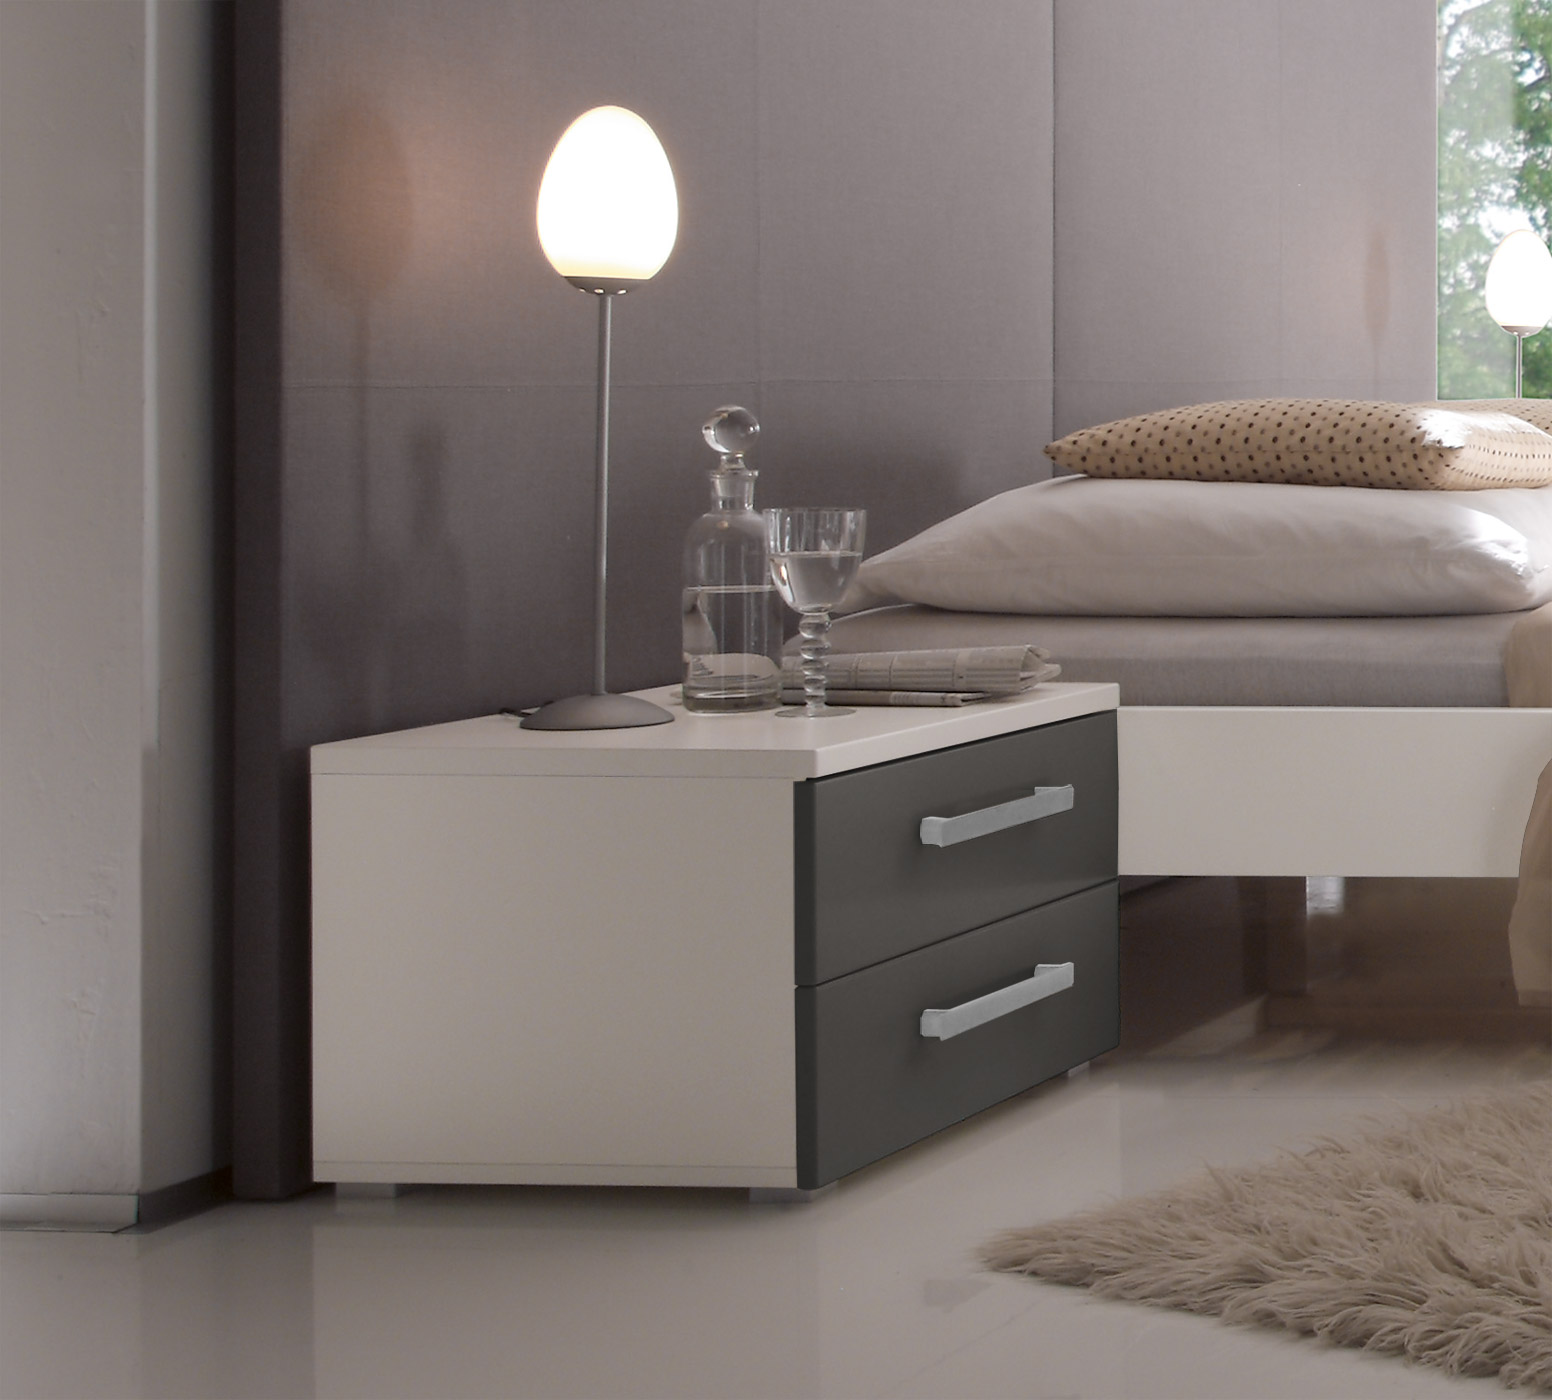 nachttisch mit mdf oberfl che kaufen aronia. Black Bedroom Furniture Sets. Home Design Ideas